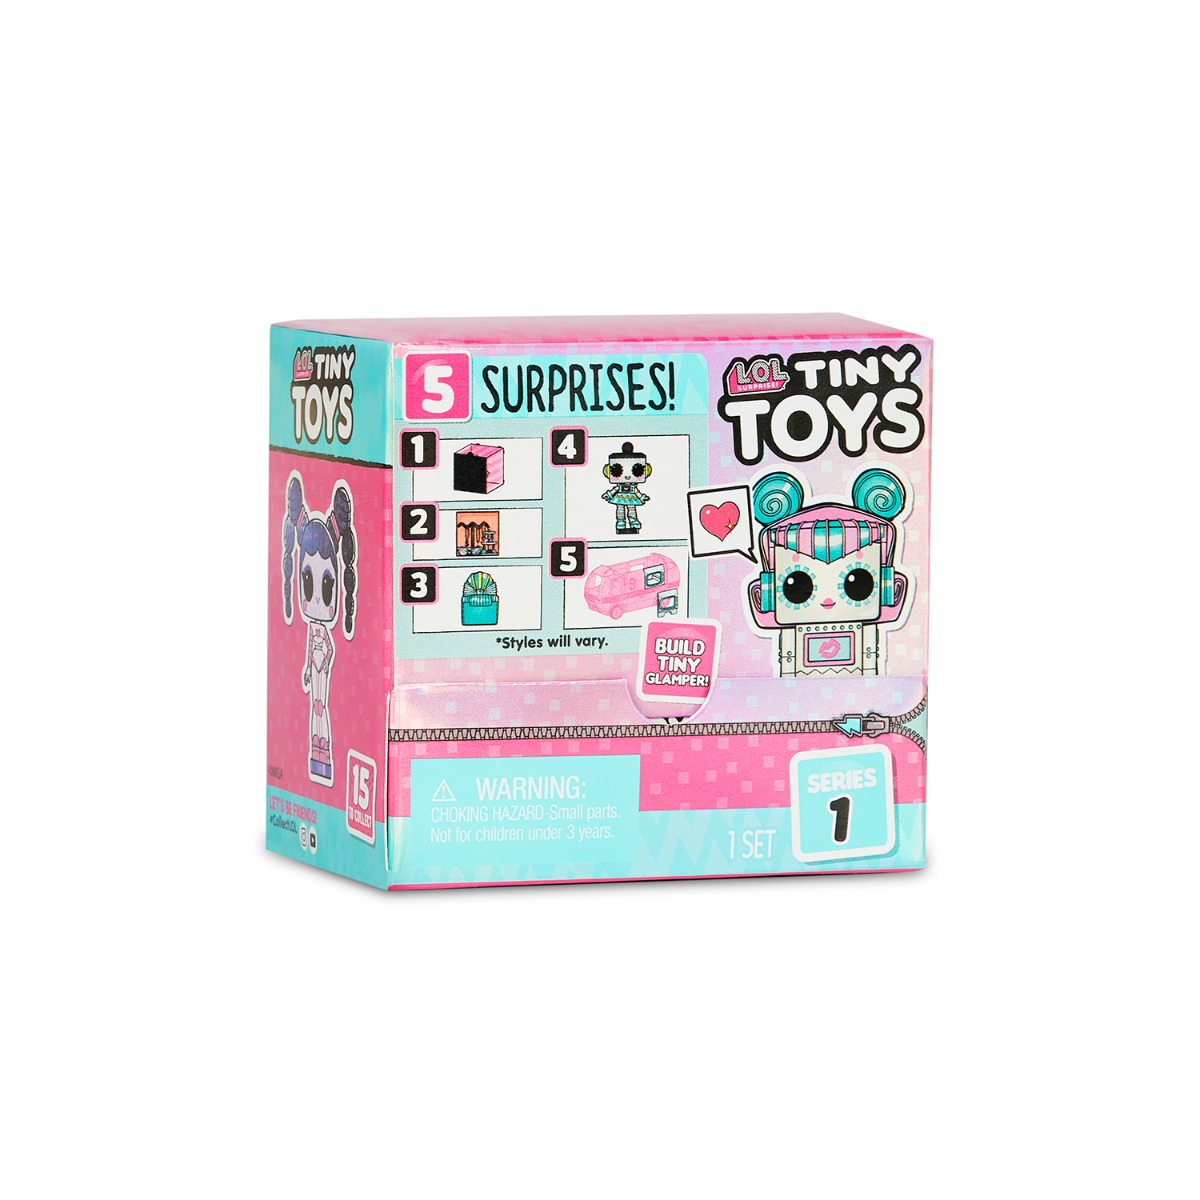 Papusa LOL Surprise - Tiny Toys (565802E7C, 565802X1E7C)